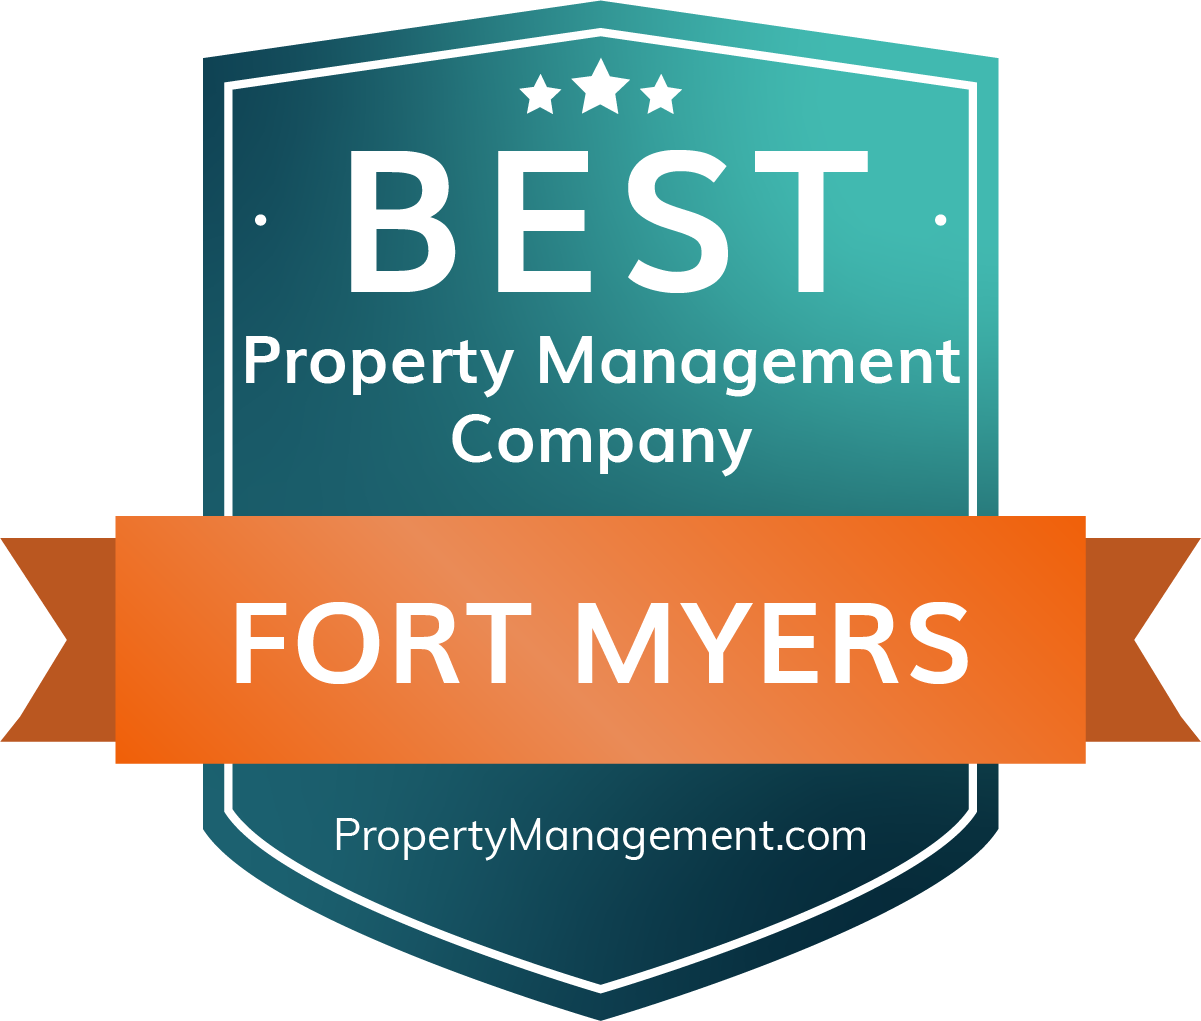 The Best Property Management in Fort Myers, FL